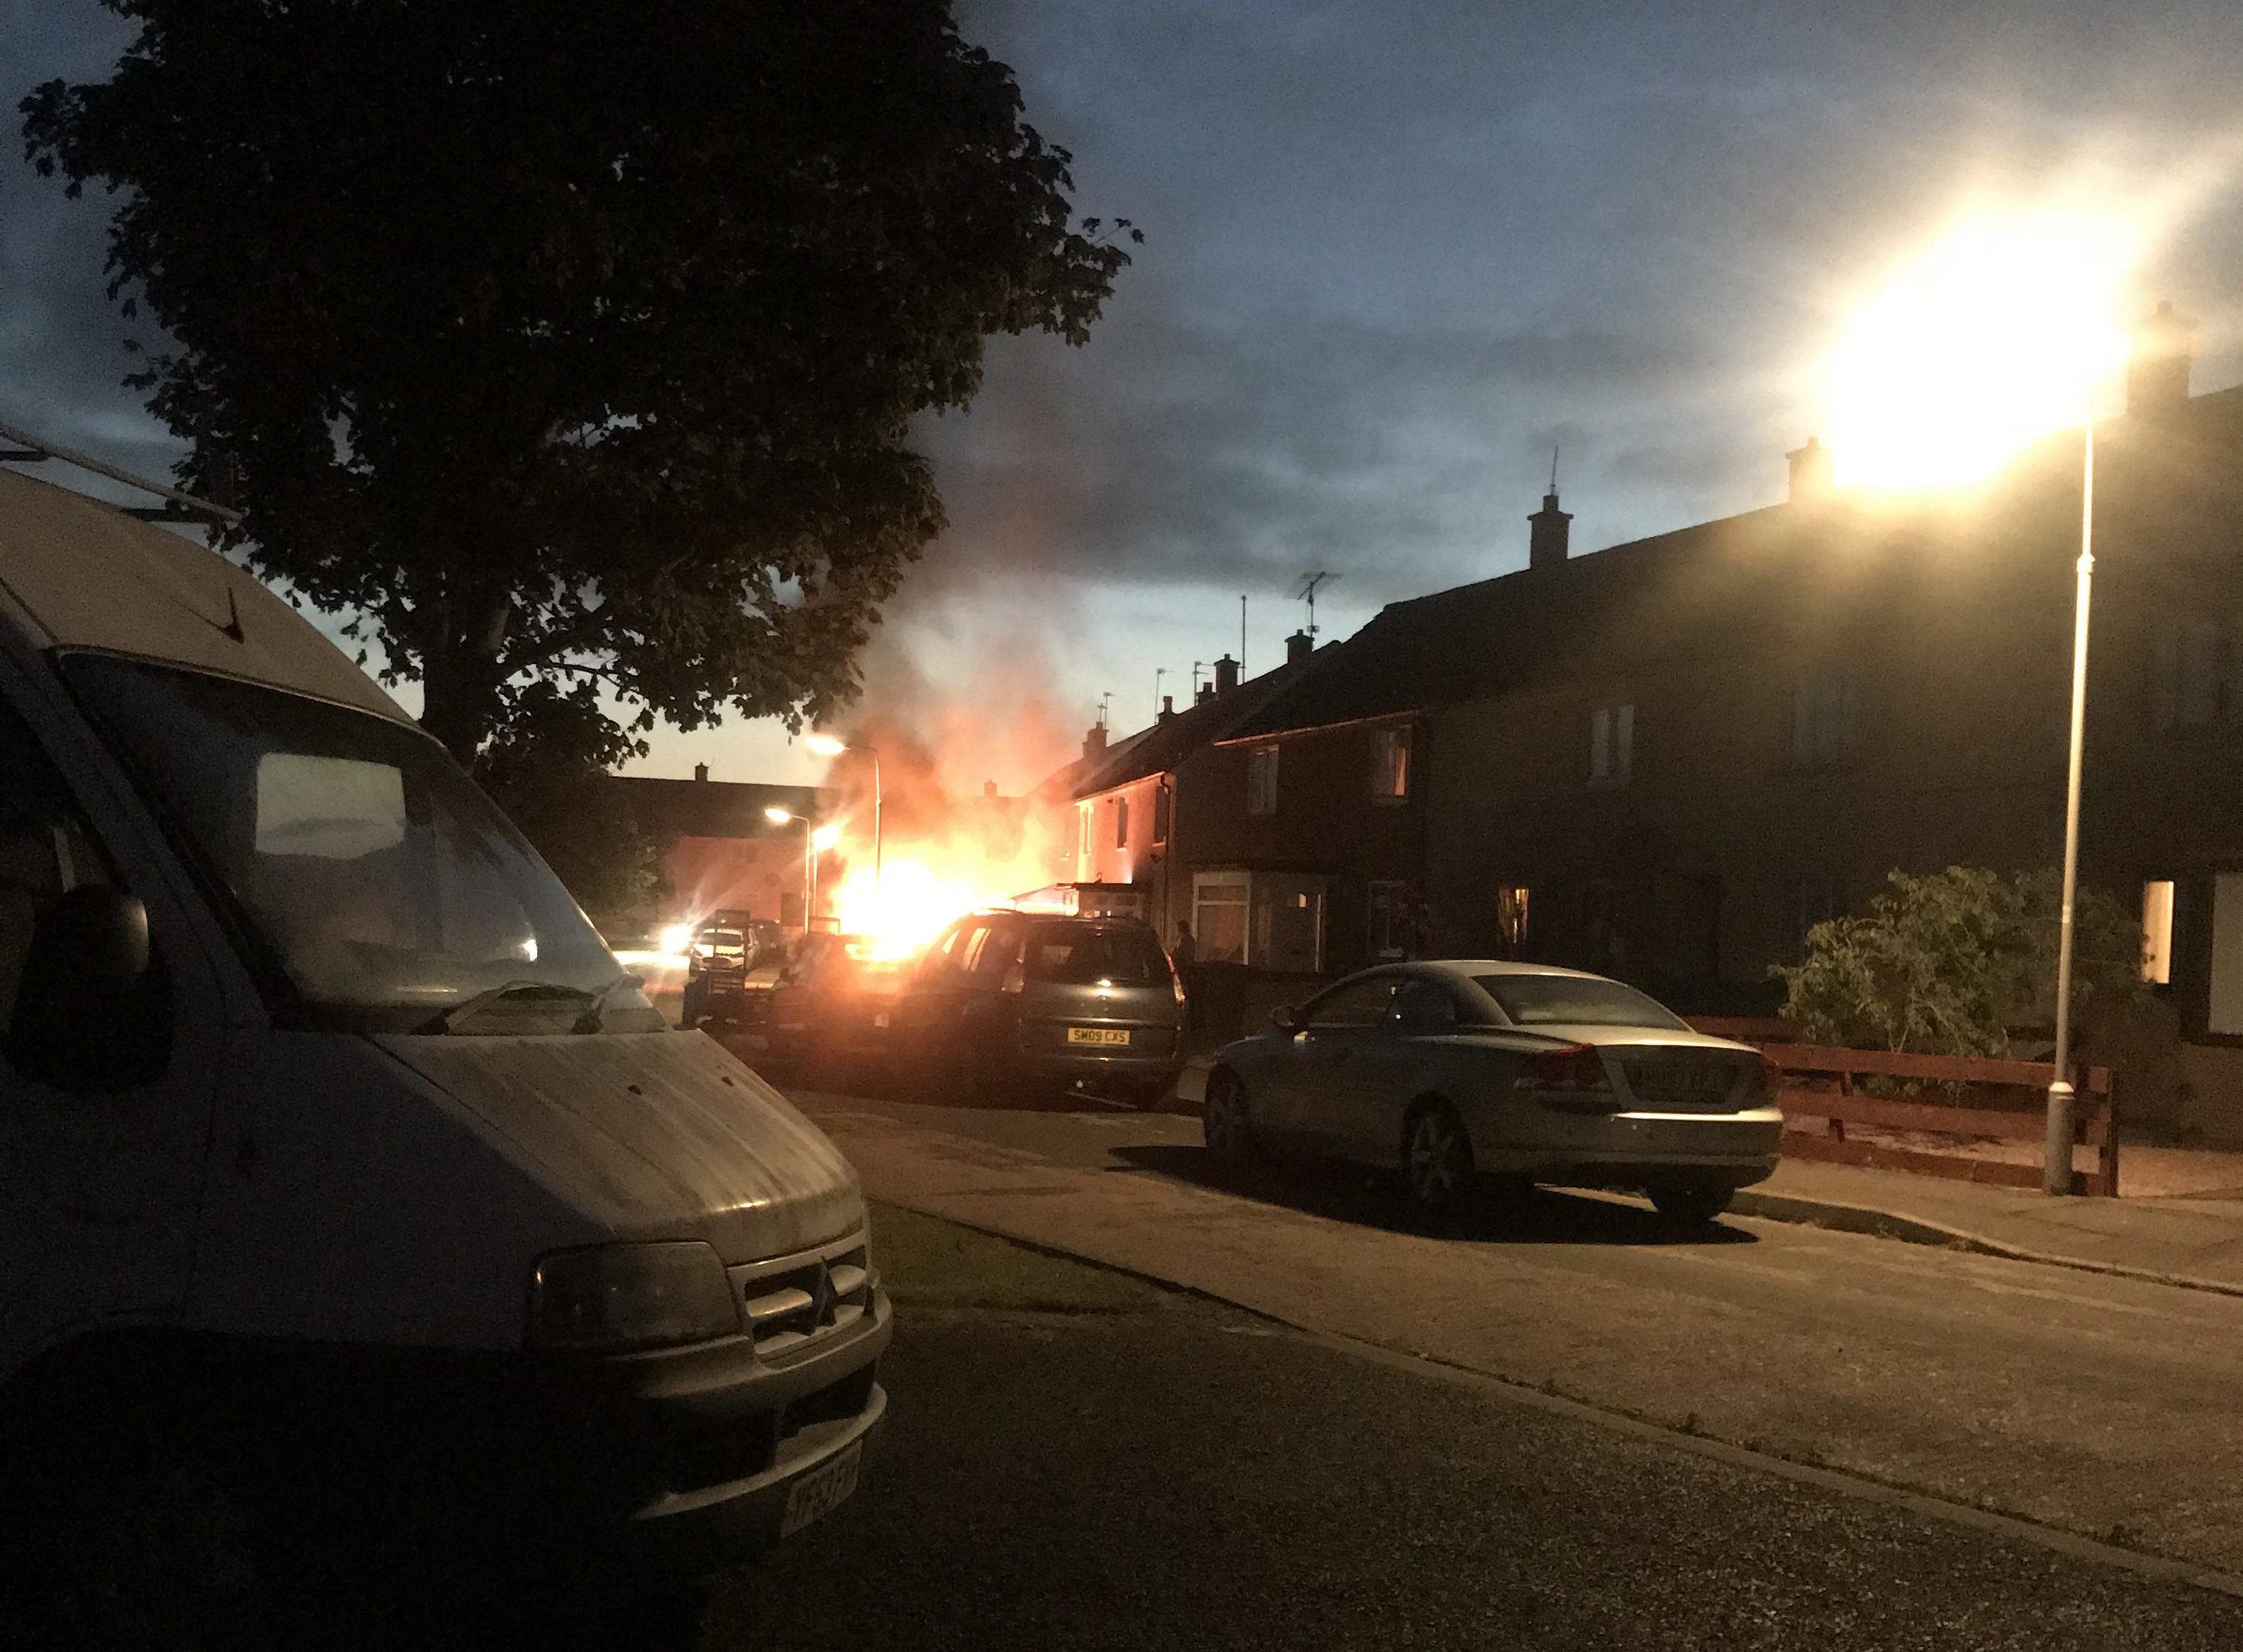 A van, thought to be a Transit, was ablaze on Monday night.